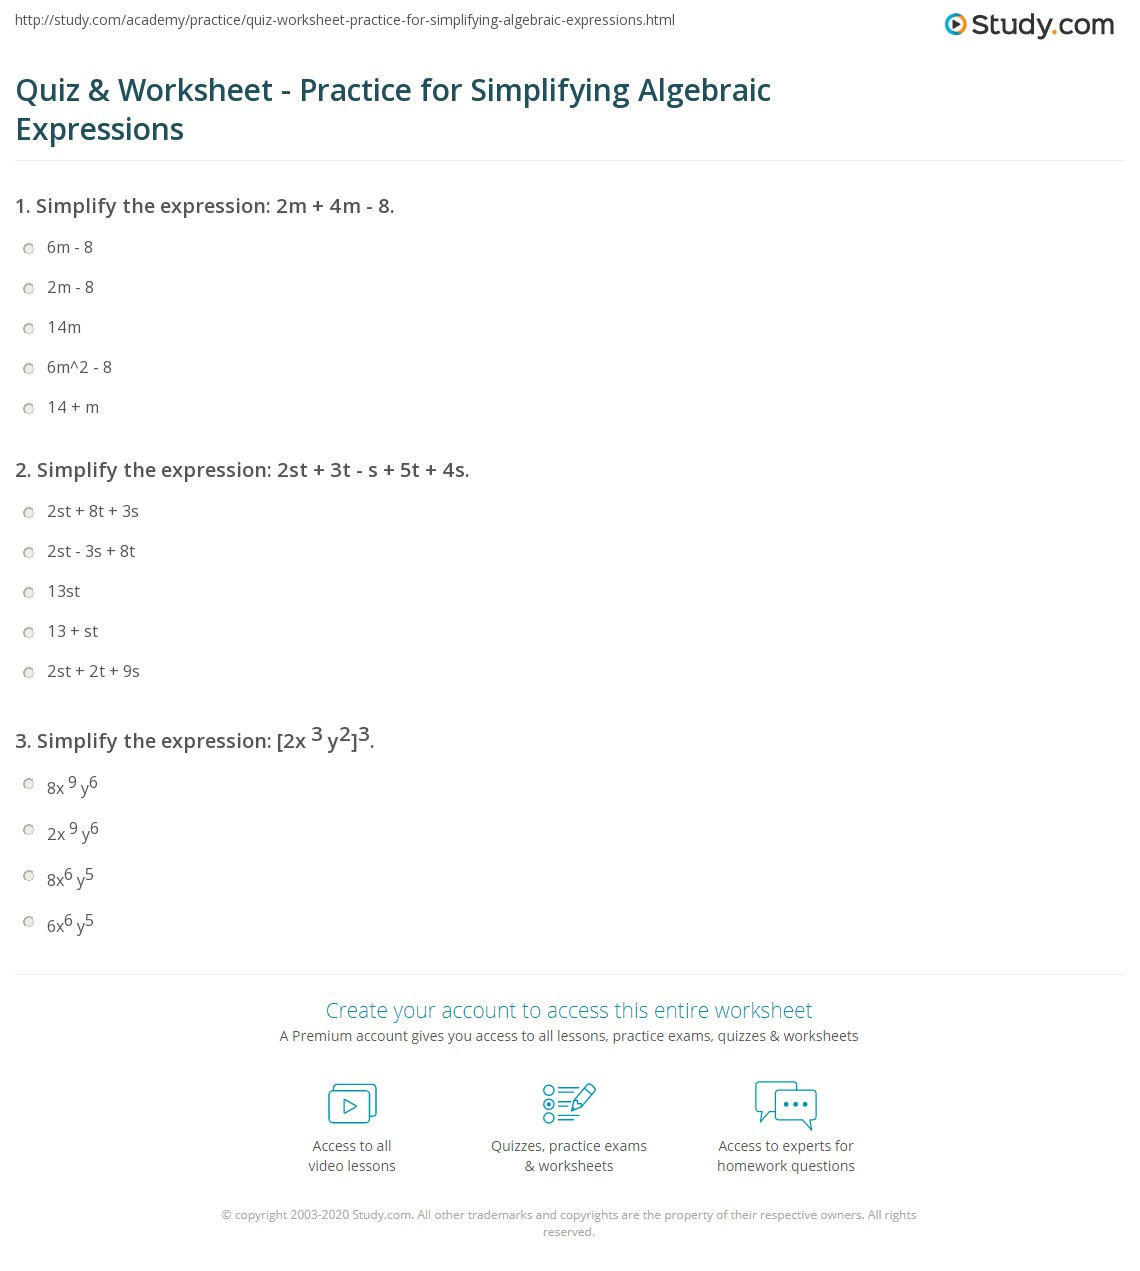 Worksheets Simplifying Algebraic Expressions Worksheets quiz worksheet practice for simplifying algebraic expressions print worksheet